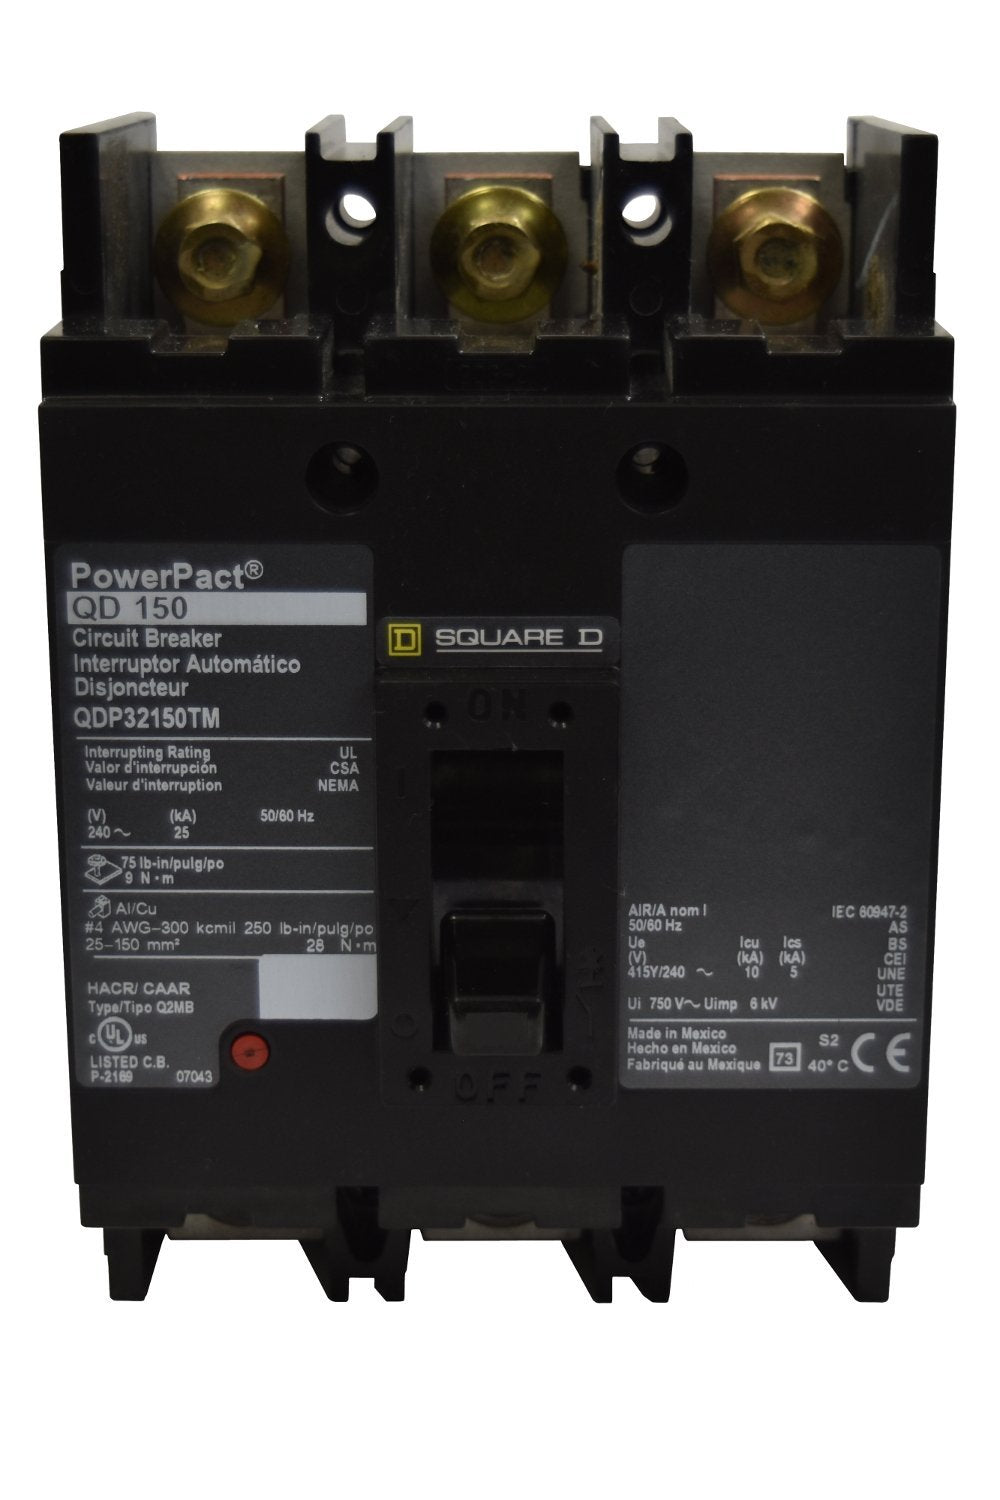 Square D QJP32250TM Circuit Breakers